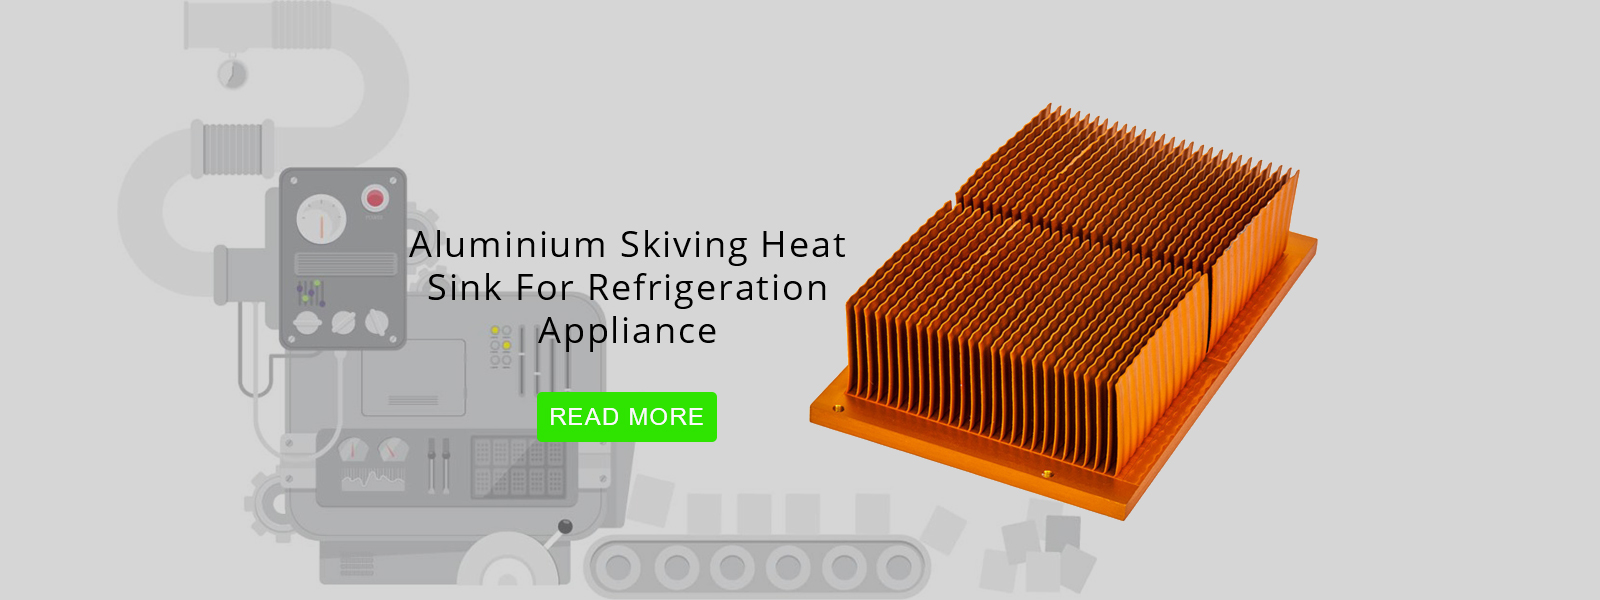 aluminium skiving heat sink for refrigeration appliance